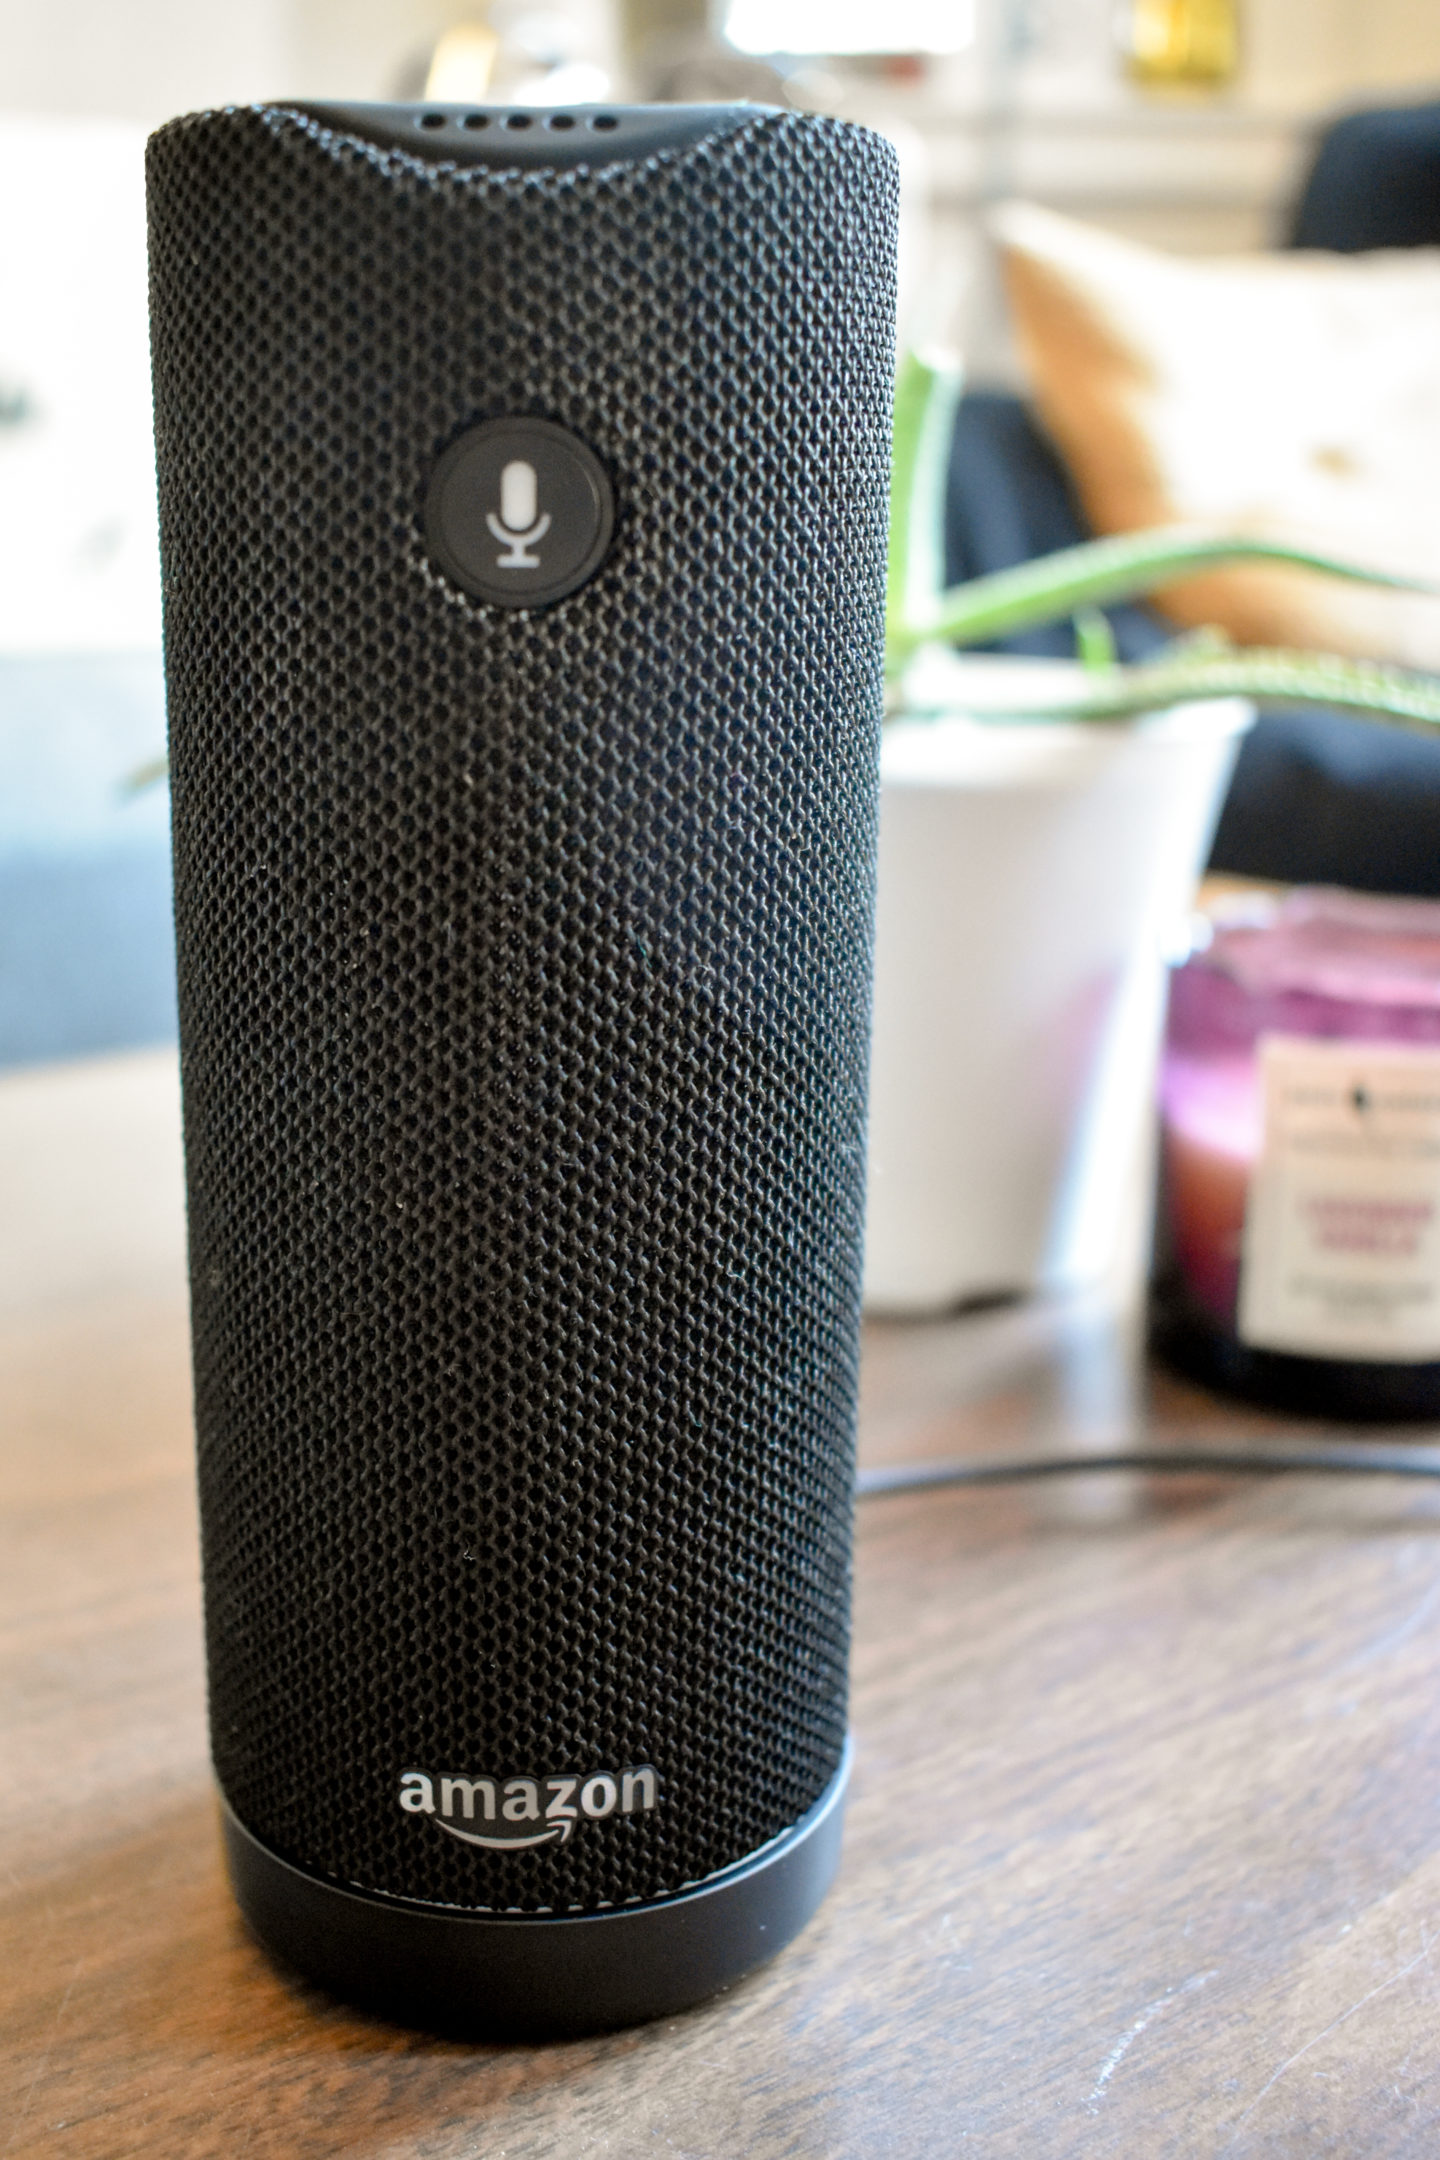 Hey y'all! This week's post is going to be a quick review of my Amazon Alexa and how I use it in my college dorm room, along with my two favorite Amazon Alexa hacks!